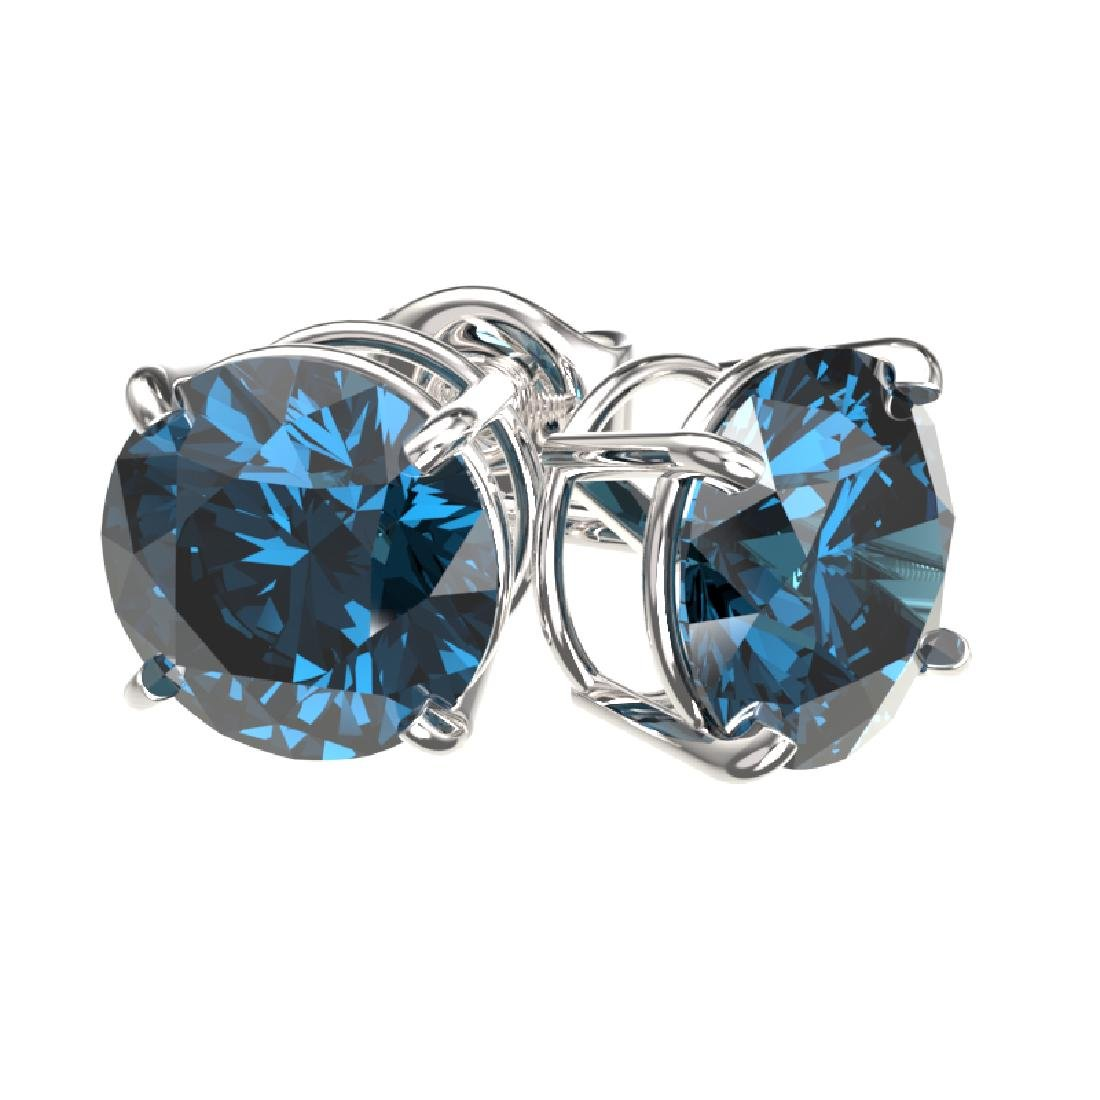 1.95 CTW Certified Intense Blue SI Diamond Solitaire - 3